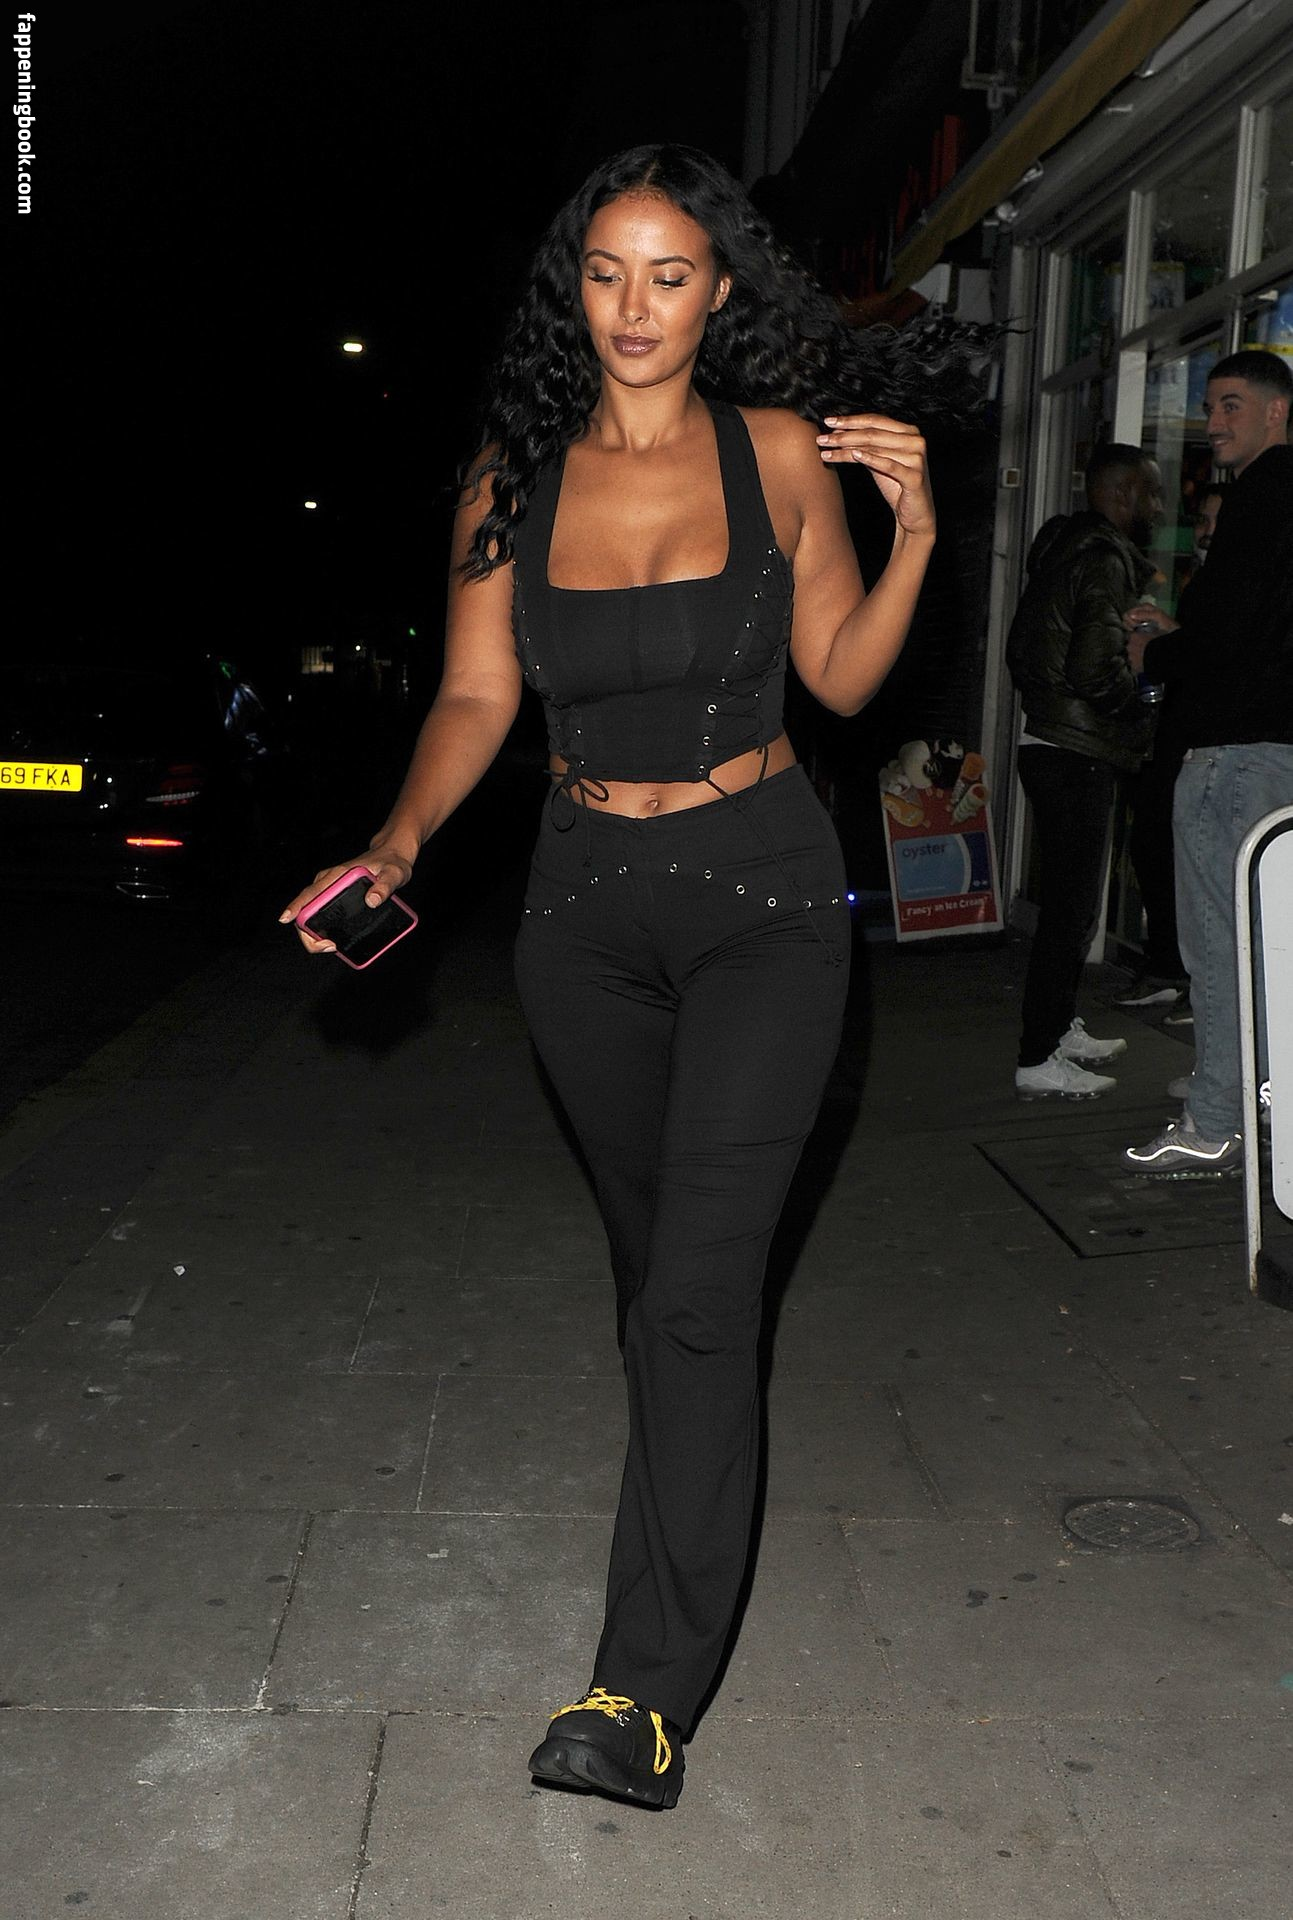 Maya Jama Cleavage - The Fappening Leaked Photos 2015-2020